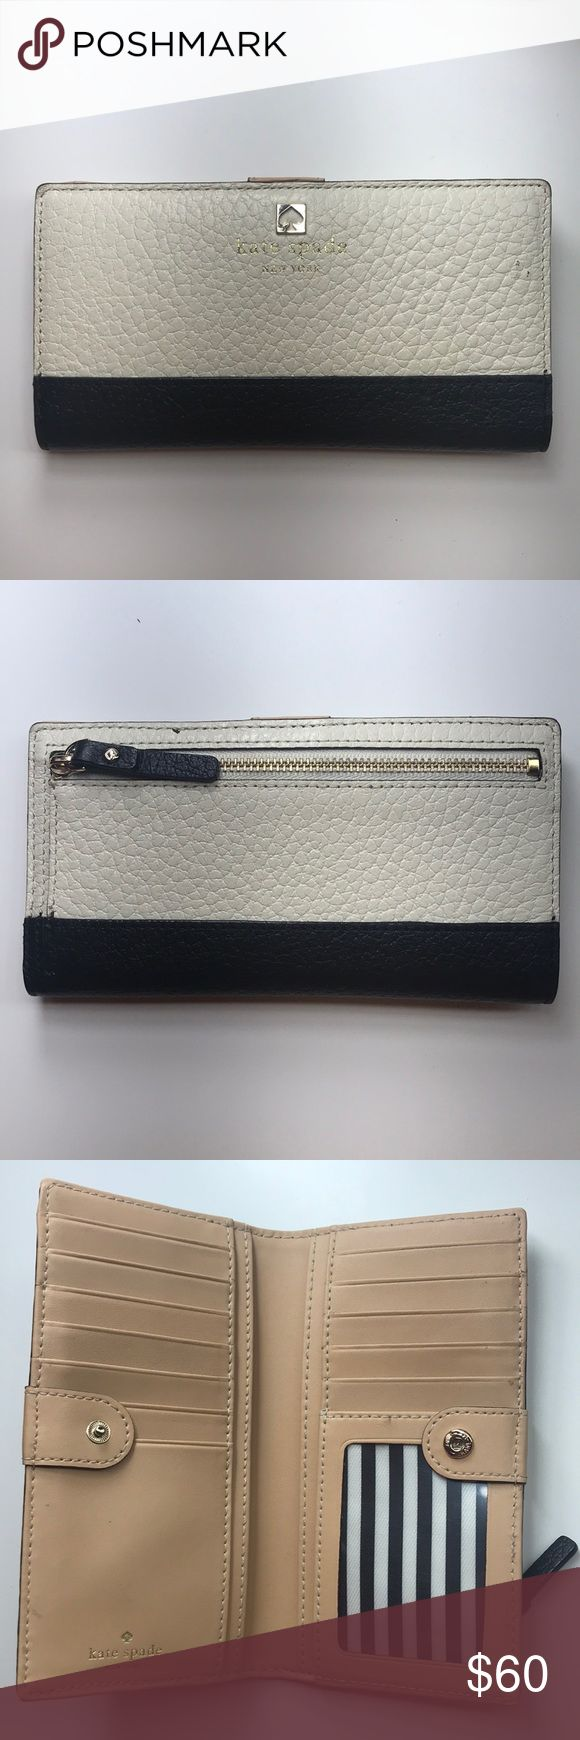 Cameron Street Stacy KateSpade Wallet Barely used. Good as new. Great condition. 12 credit card slots. 1 ID slot. Two billfolds. Leather. Stripe print lining. kate spade Bags Wallets